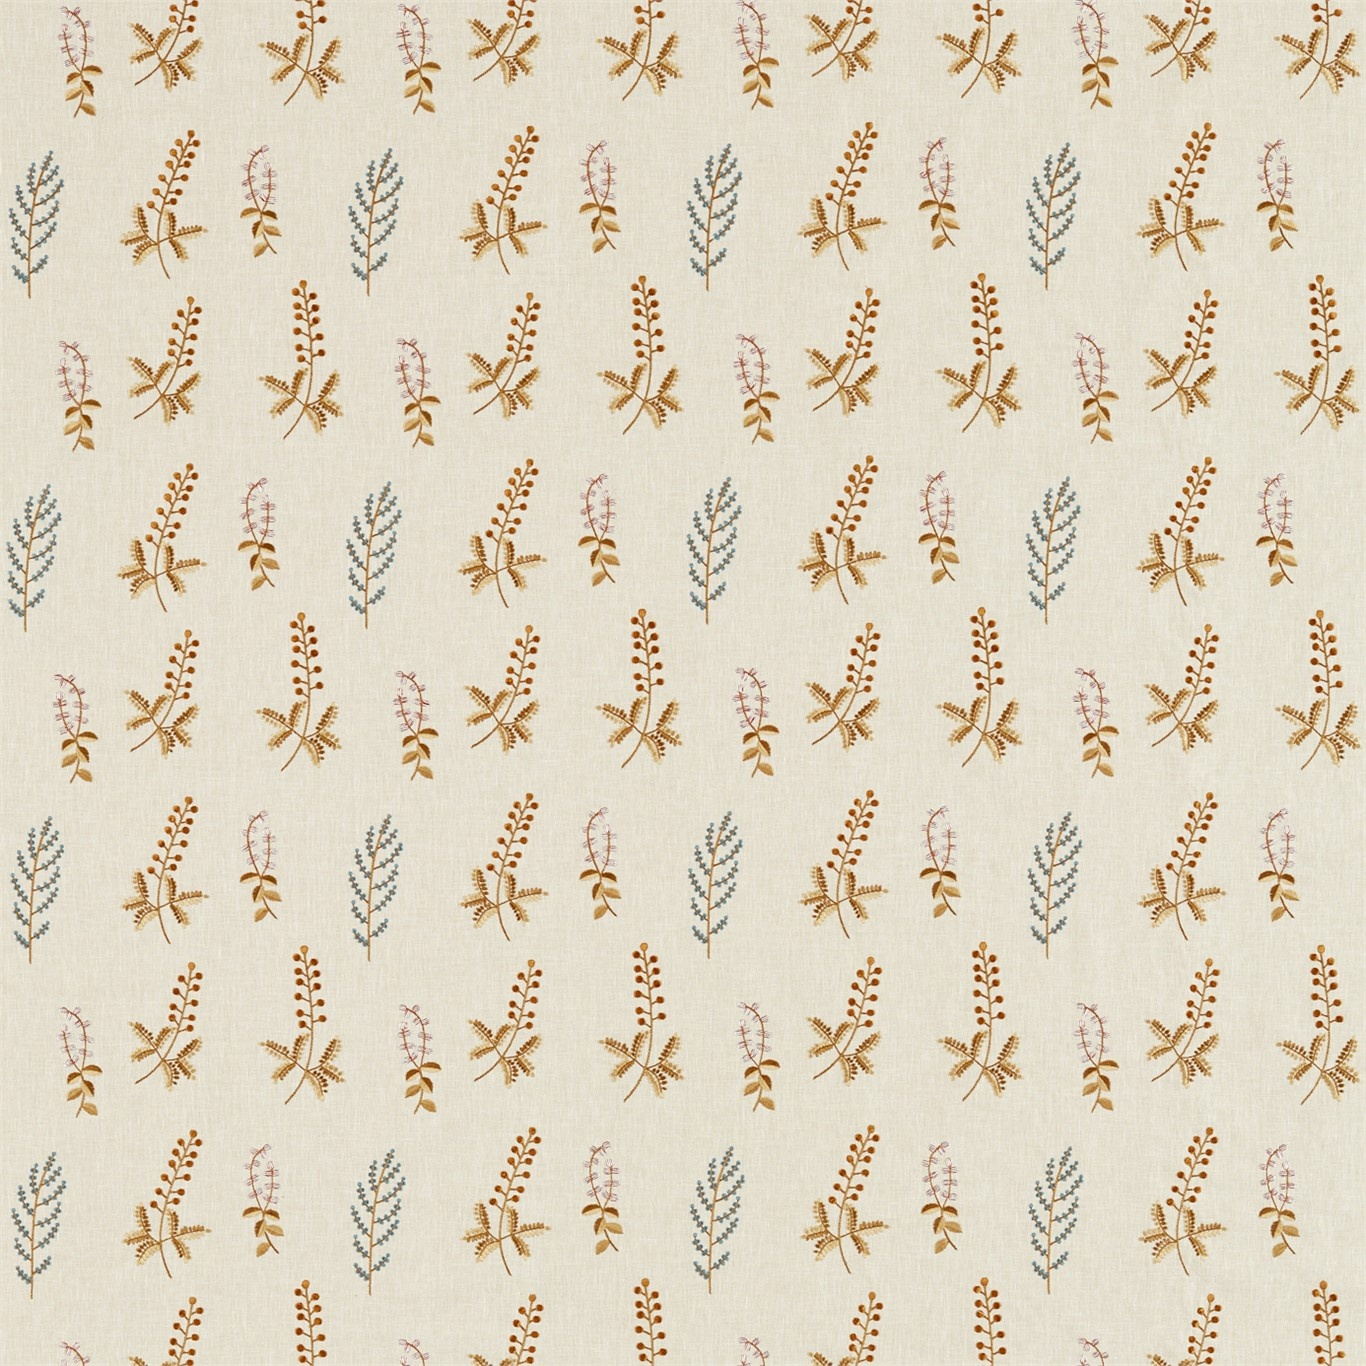 Image of Sanderson Home Bilberry Denim/Barley Fabric 236423